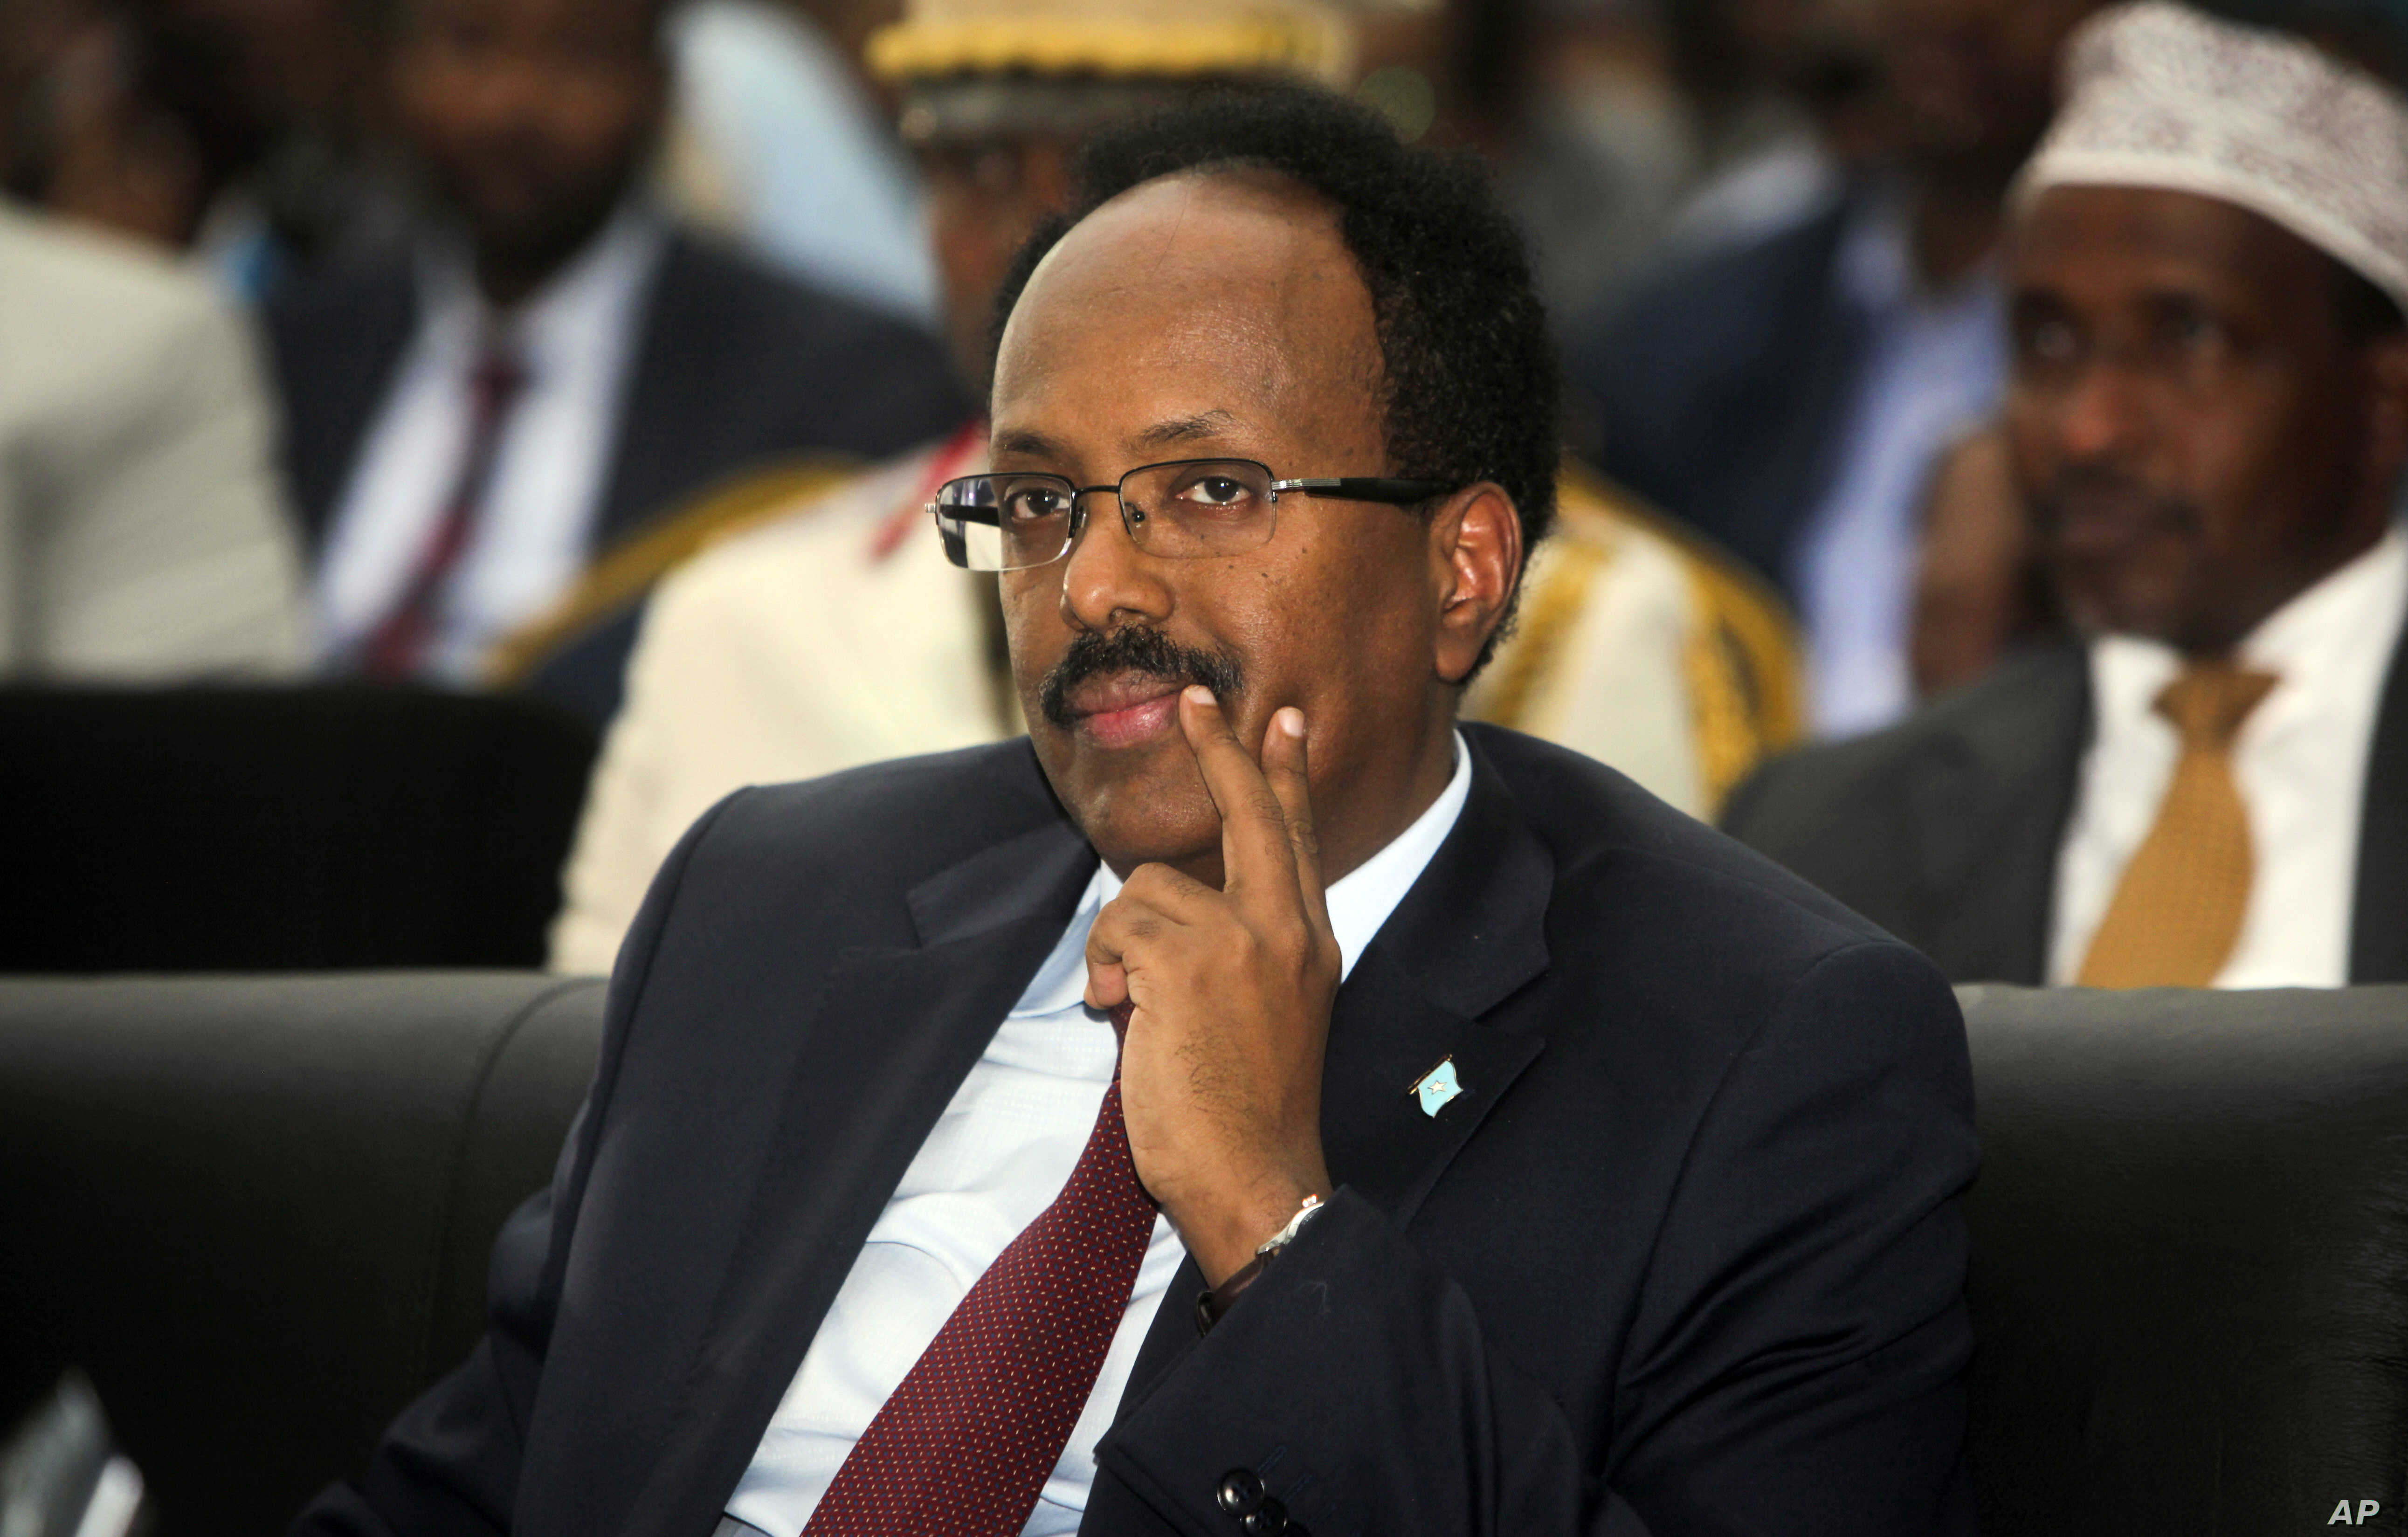 New Somali President Pledges to Tackle Issues of Insecurity